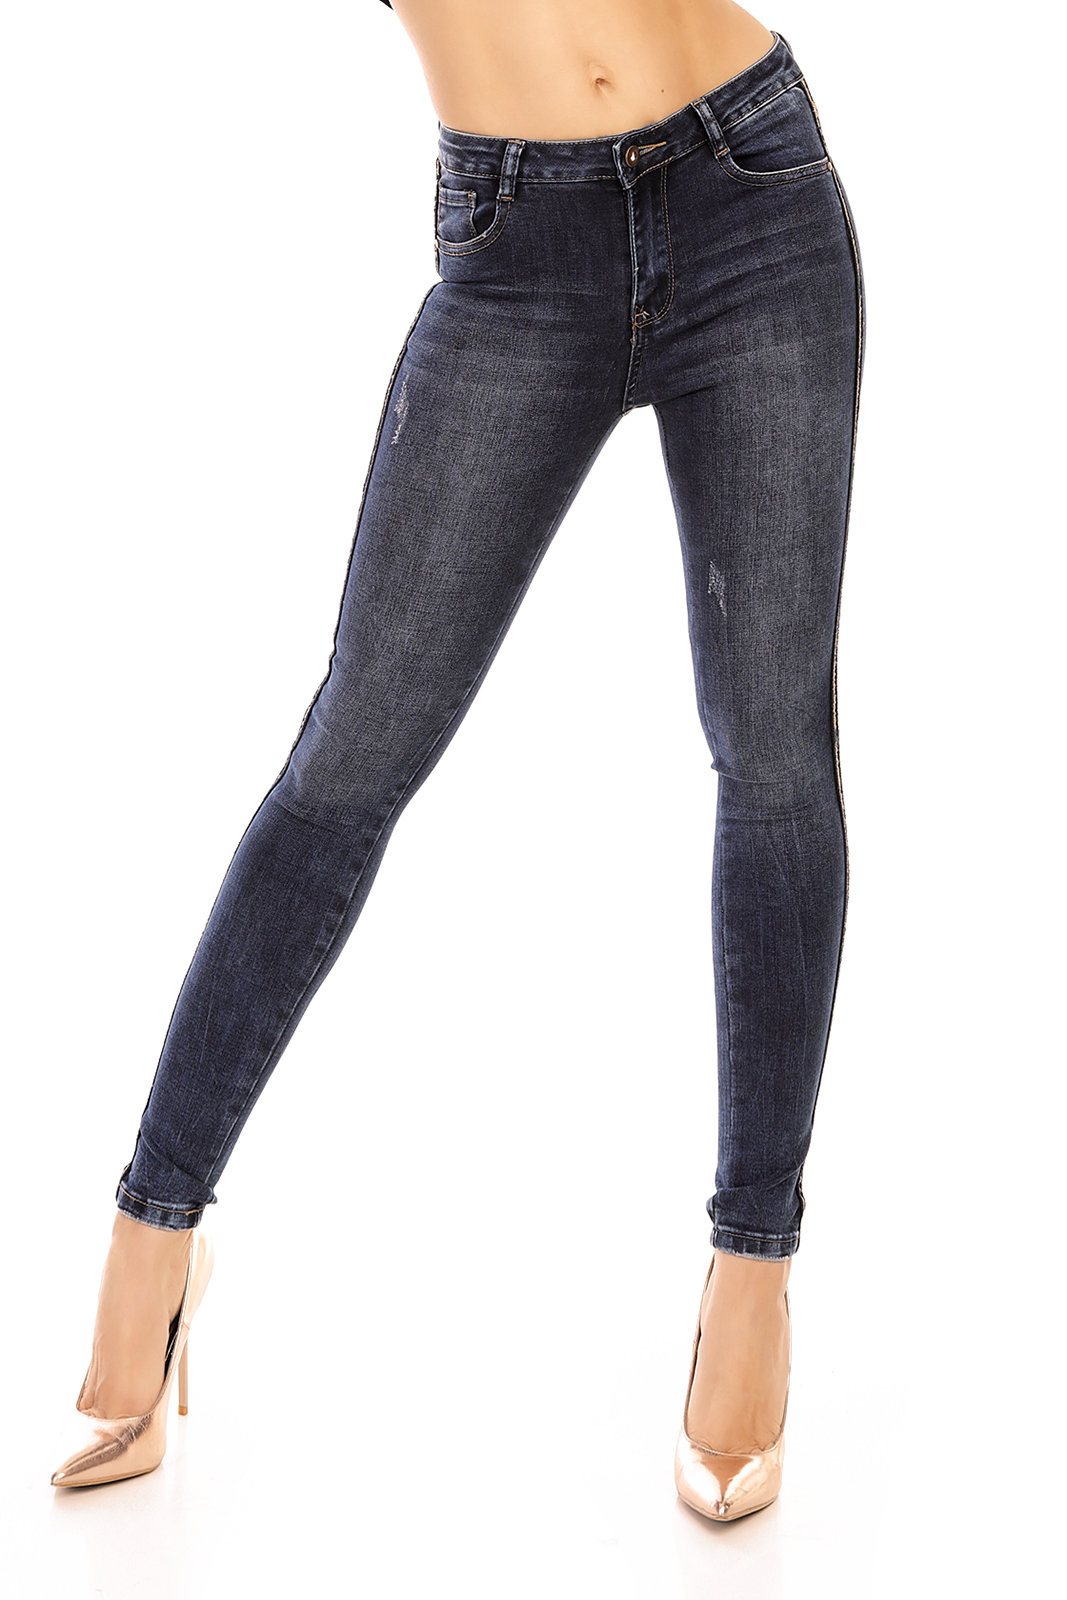 Pants Jeans Laulia 5D098 Dark Blue